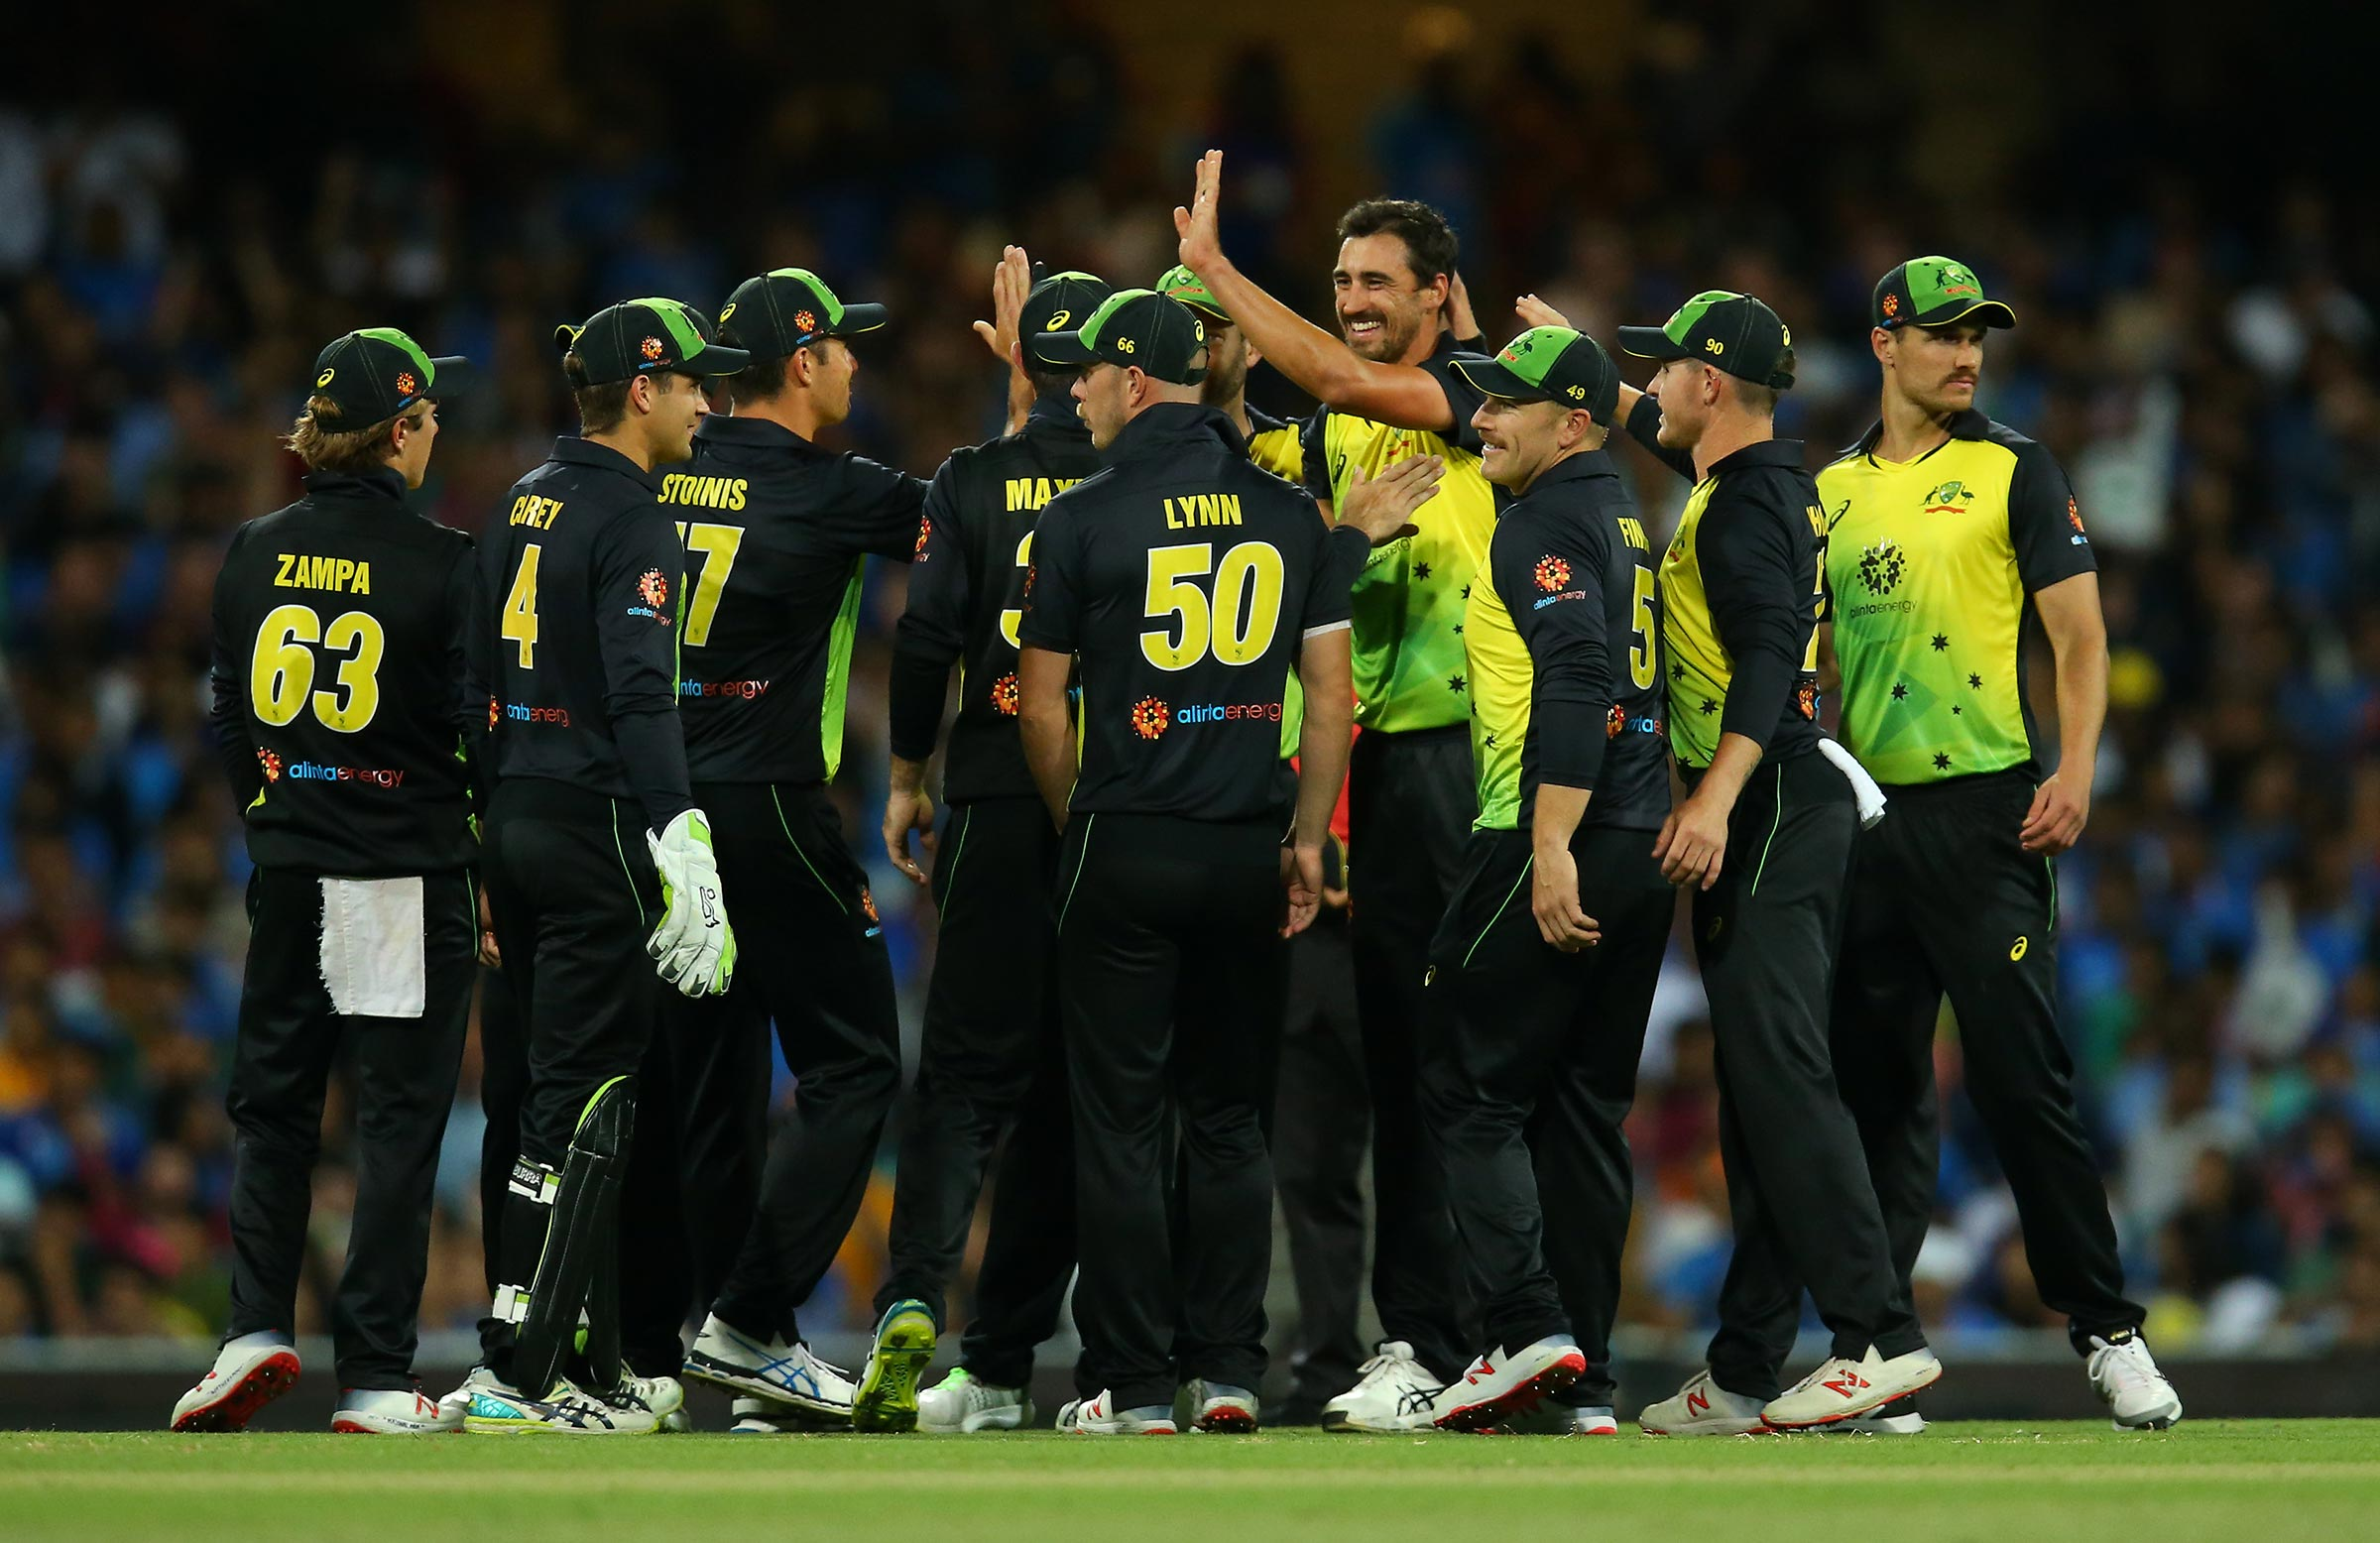 Australia will begin their tournament at the SCG // Getty